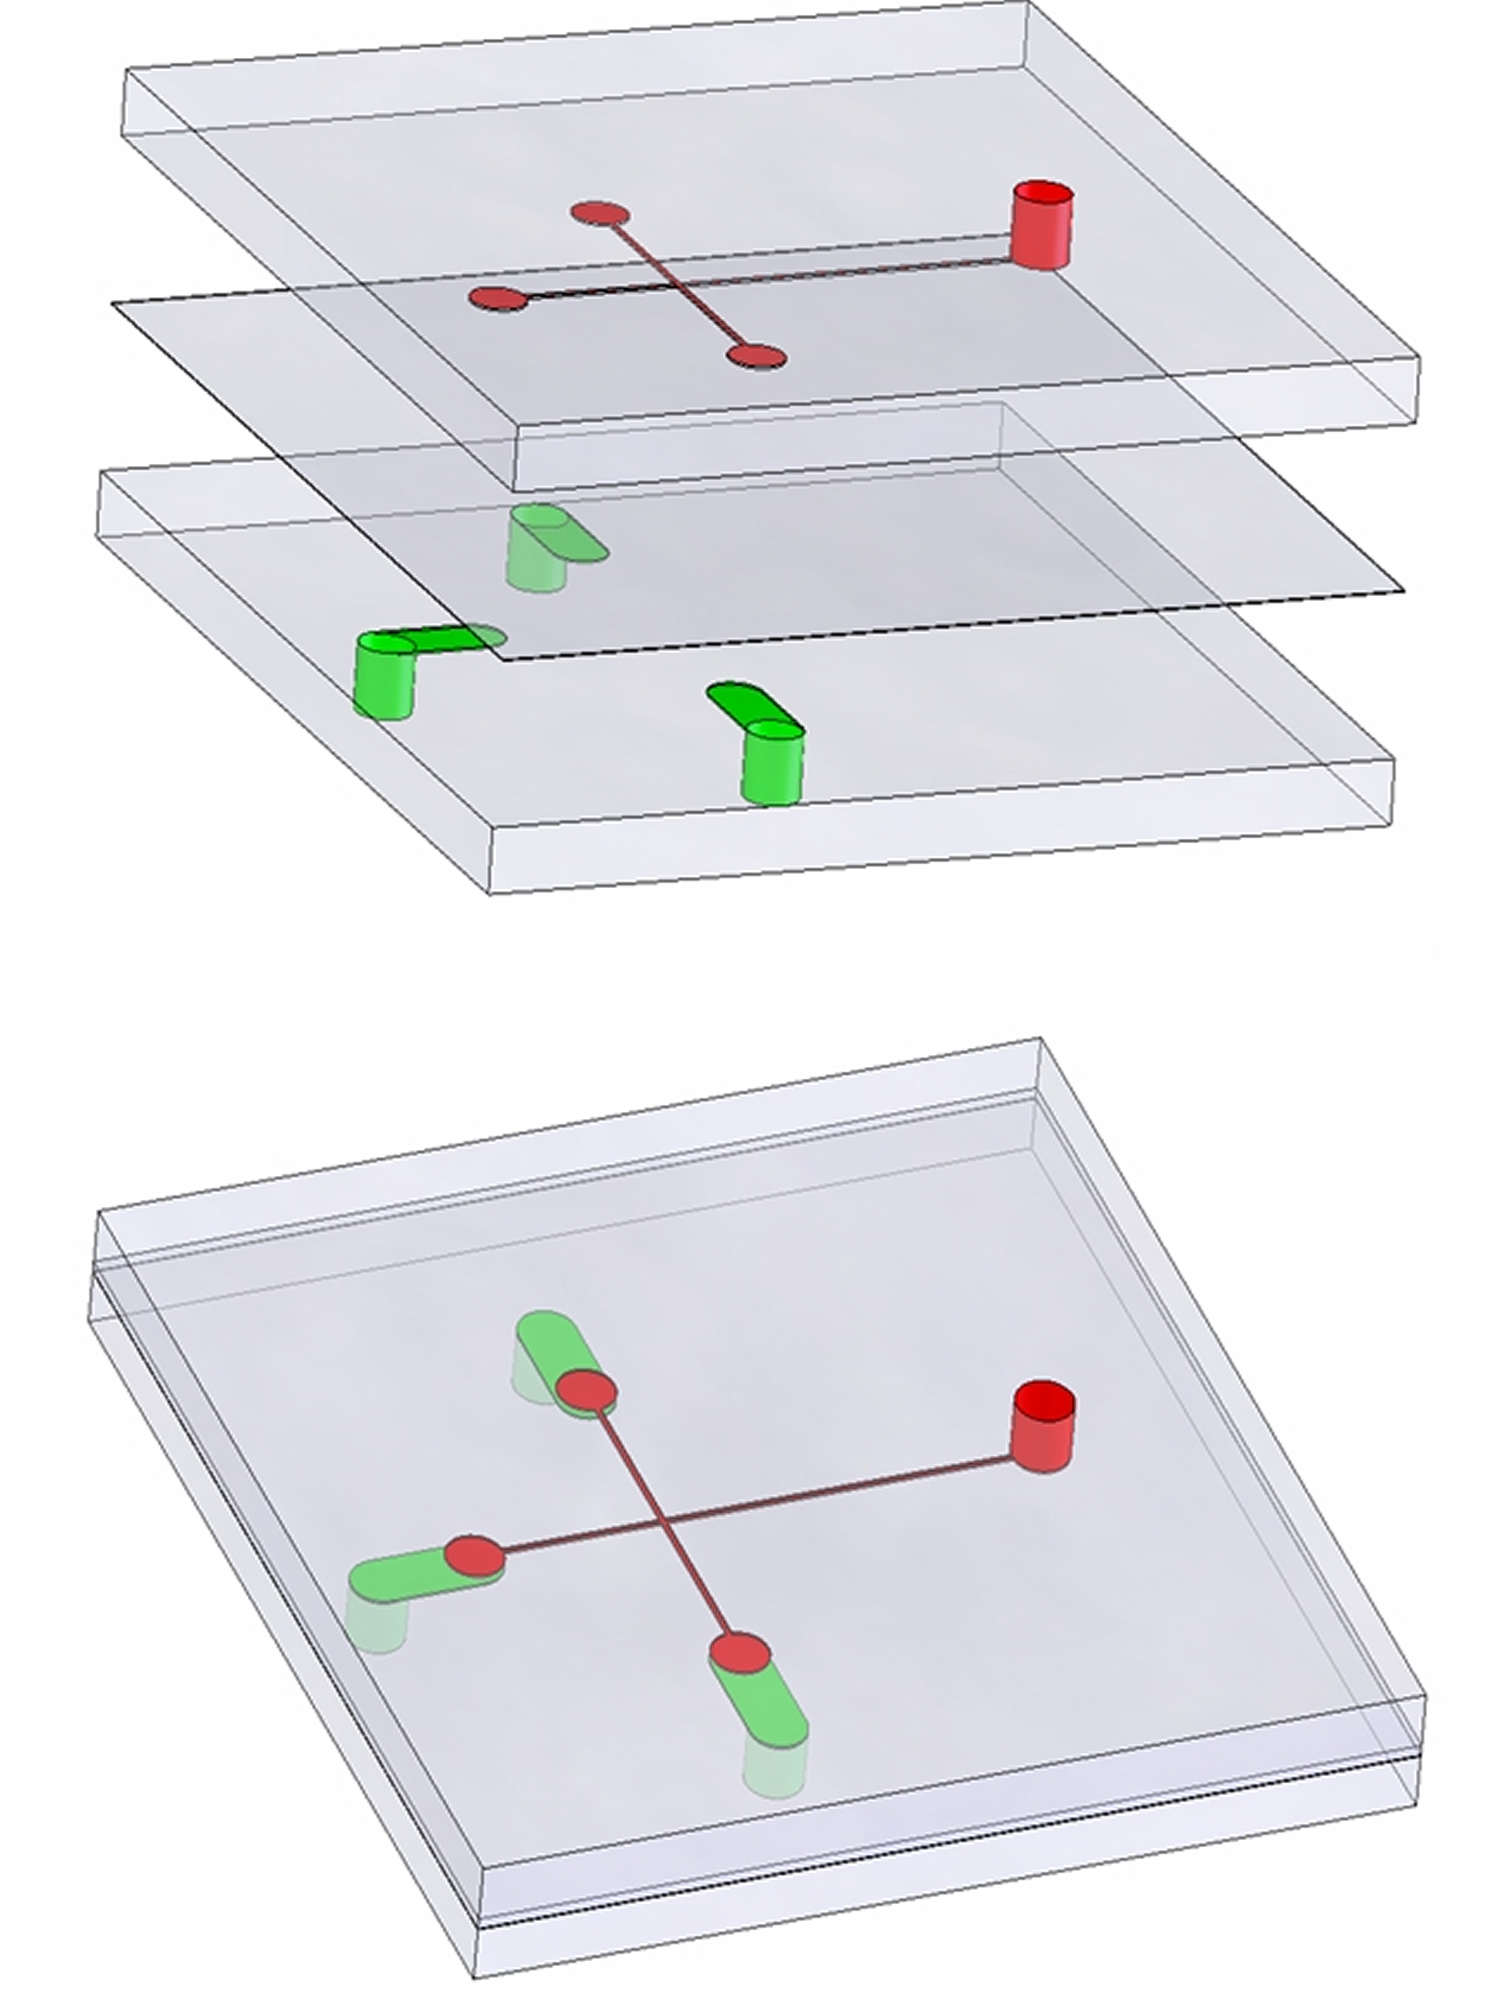 A new micropump developed at the University of Utah is made of three layers (upper illustration) of PDMS, a material similar to clear silicone bathtub caulk. The middle layer is thin. Air can pass through it but not liquid. The assembled pump (lower illustration) would be part of a credit-card-sized lab-on-a-chip to make medical lab tests faster and less expensive. In this example, a blood sample is placed in an open well in the top layer (red cylinder on right of both illustrations). A vacuum is applied to control channels in the bottom layer (green in both illustrations). The vacuum draws air through the middle layer, which pulls the blood from the well through hair-sized microchannels (red lines) and into test chambers (the three red circles), where the blood would mix with chemicals, antibodies or some other material needed for a test.